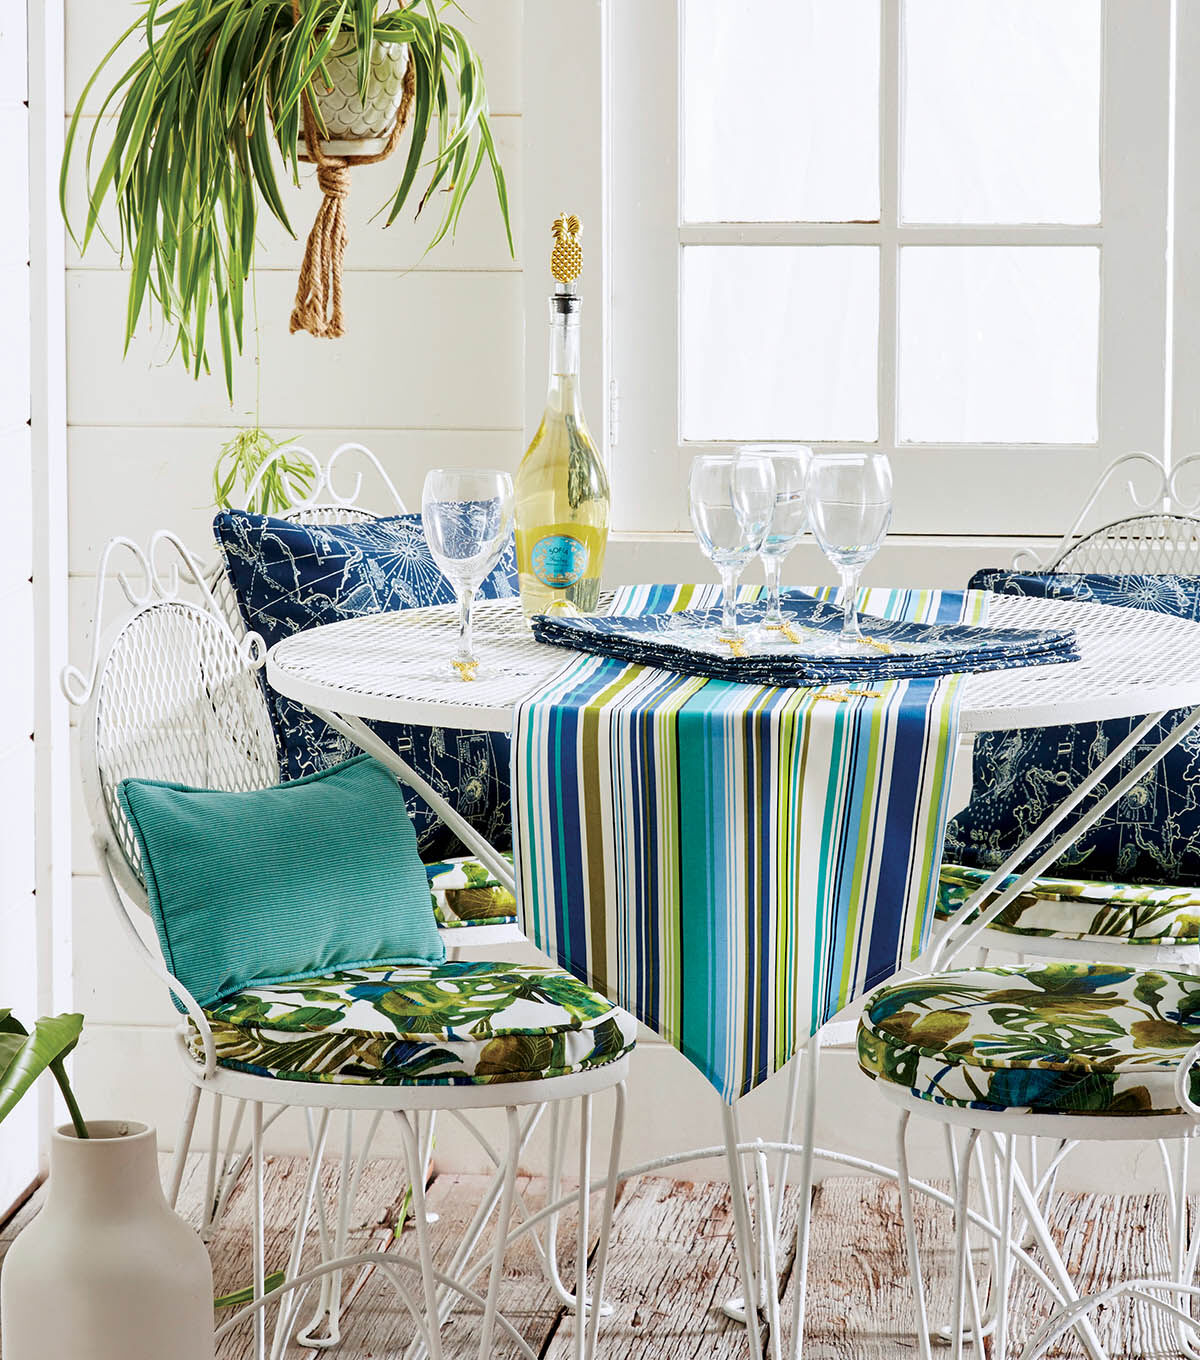 How To Make A Home Décor Table Setting